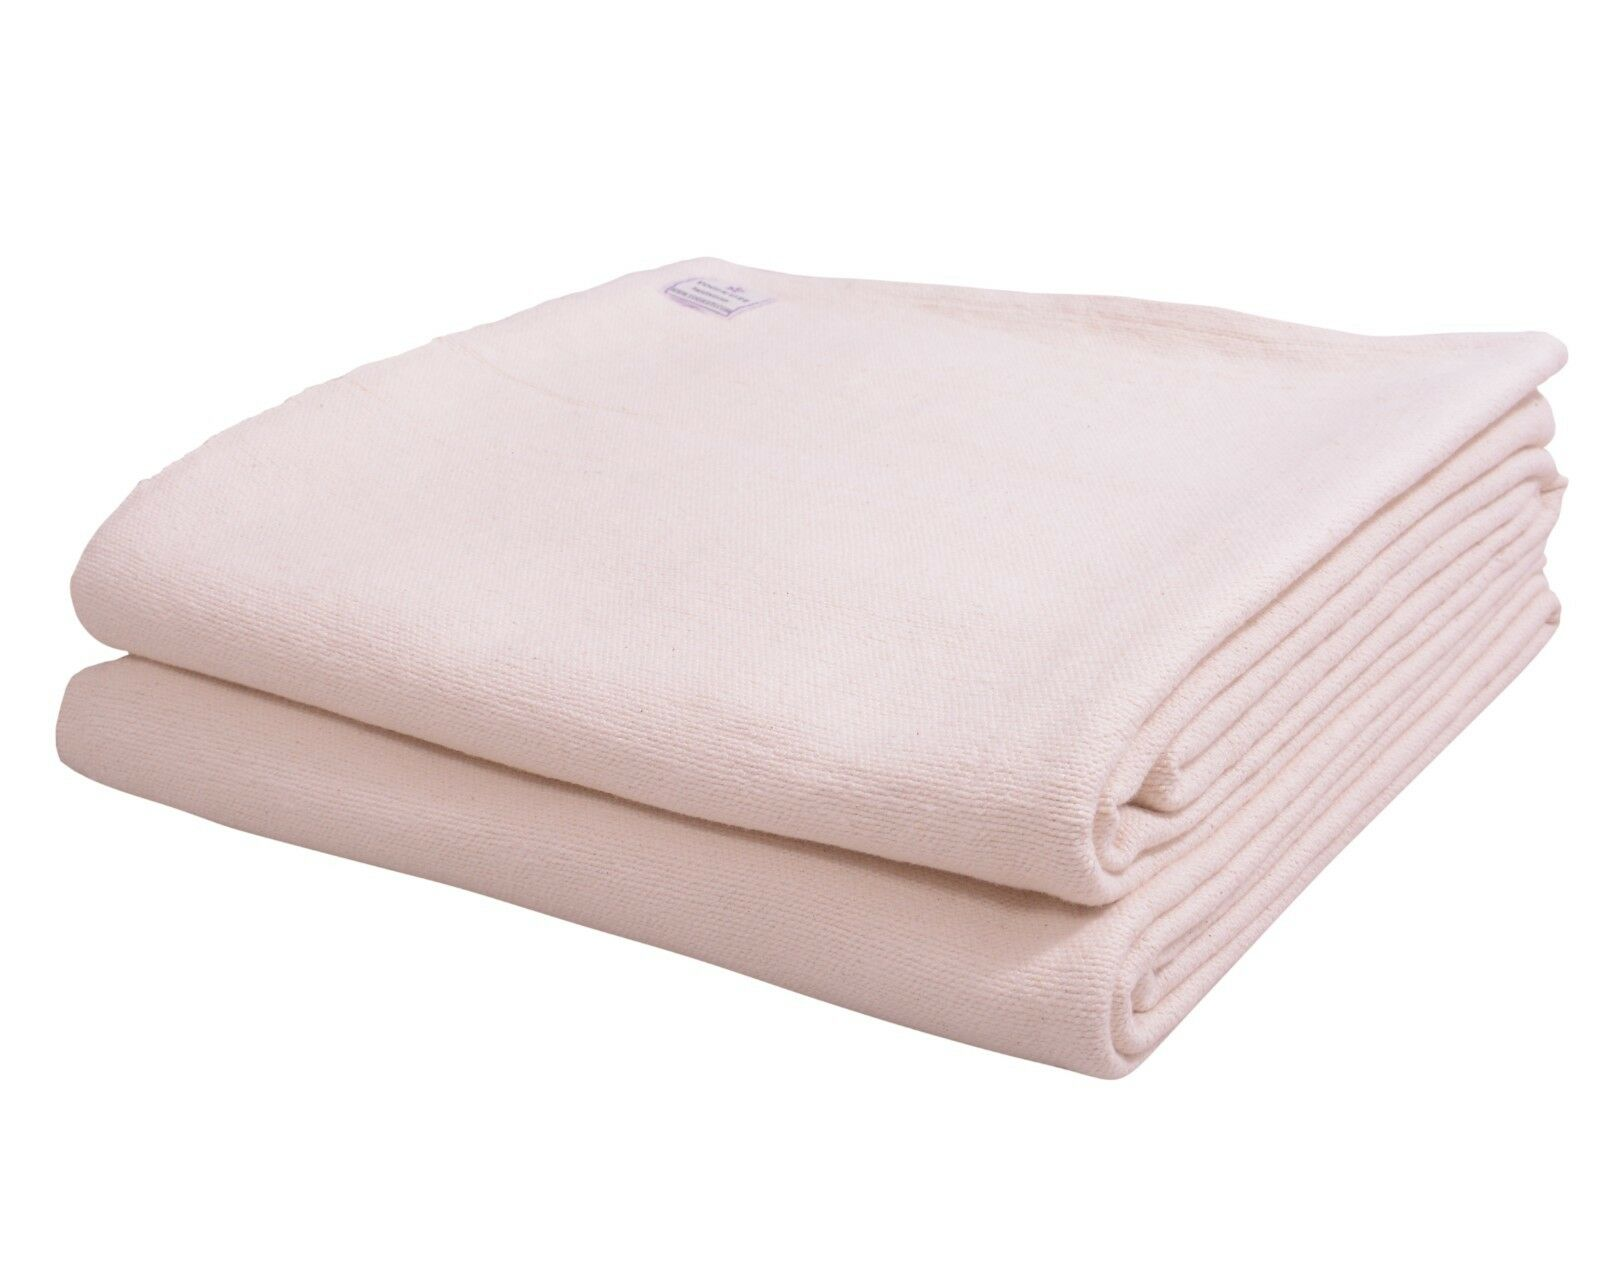 100% COTTON BEST QUALITY YOGA BLANKETS (SET OF 2) WITH FREE SHIPPING